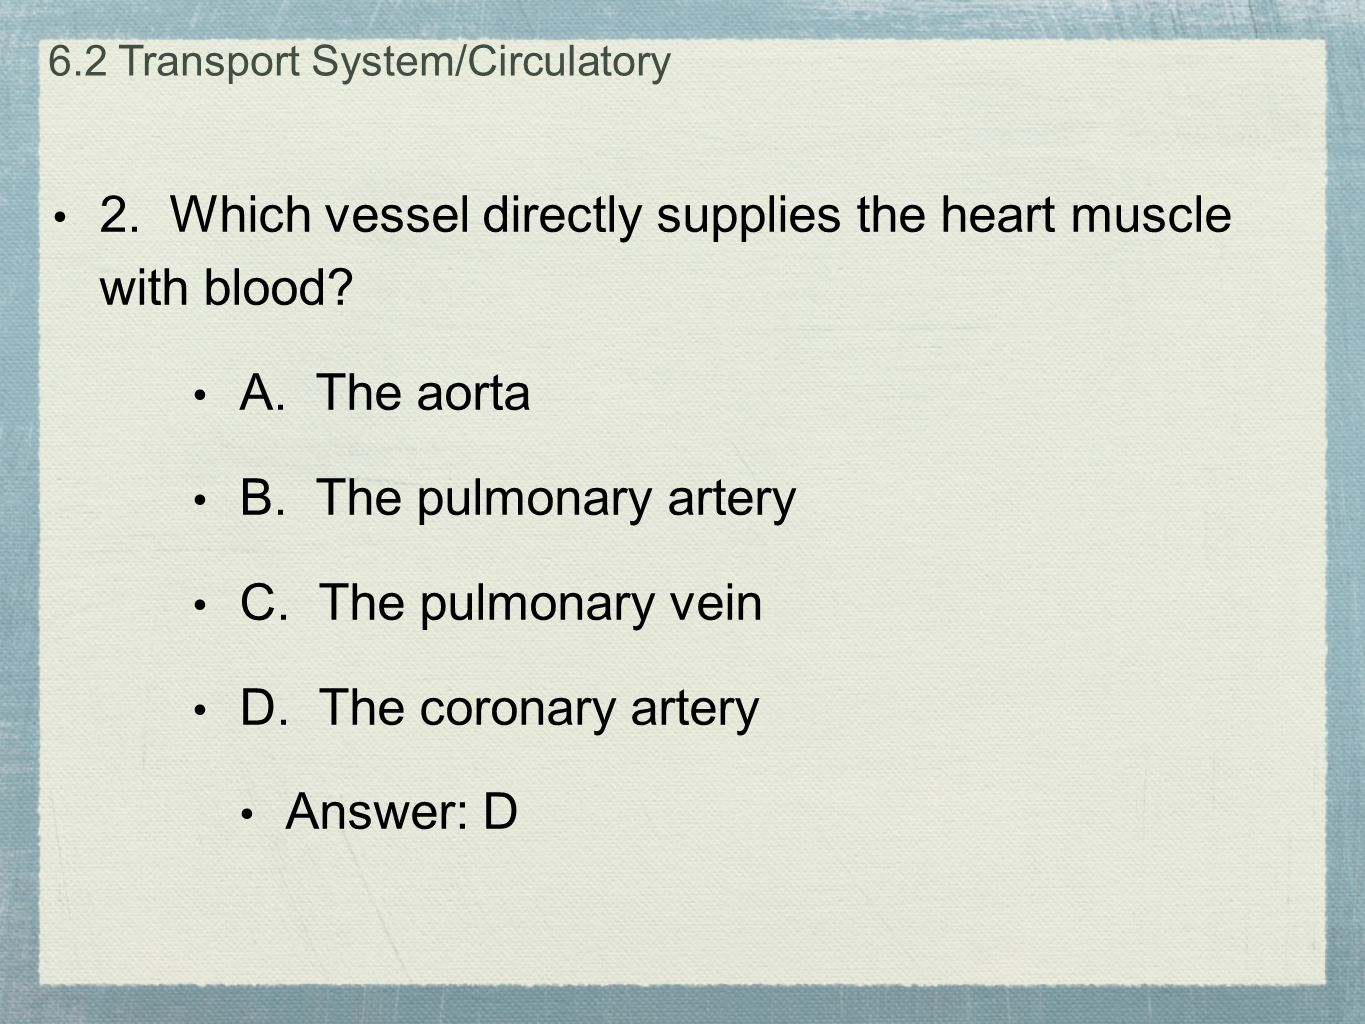 2. Which vessel directly supplies the heart muscle with blood